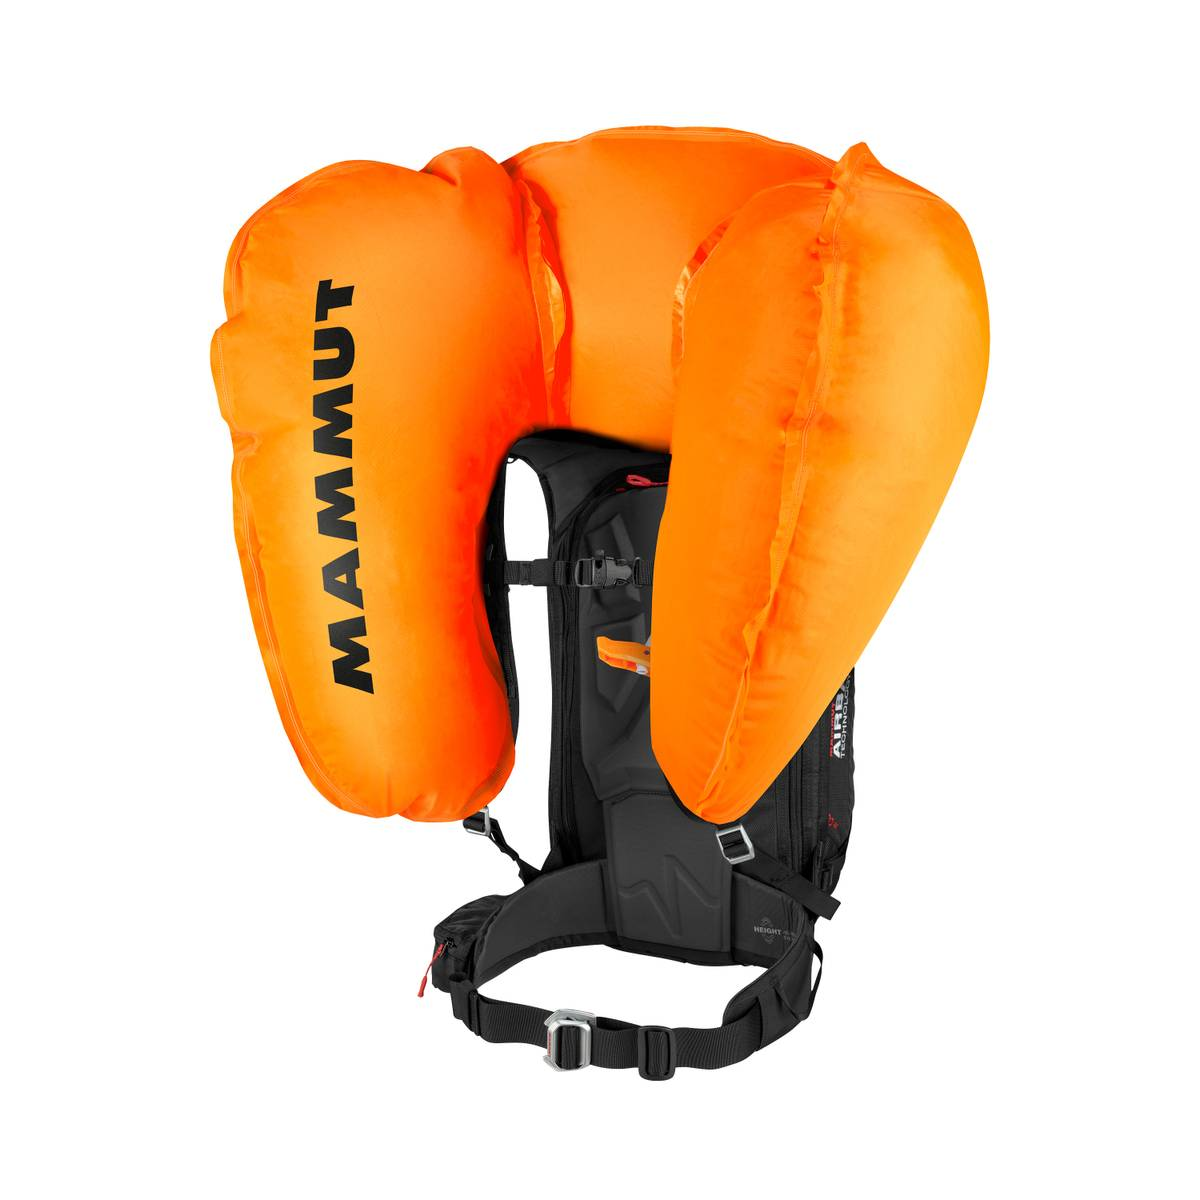 Mammut Pro Protection Airbag 3.0 45L